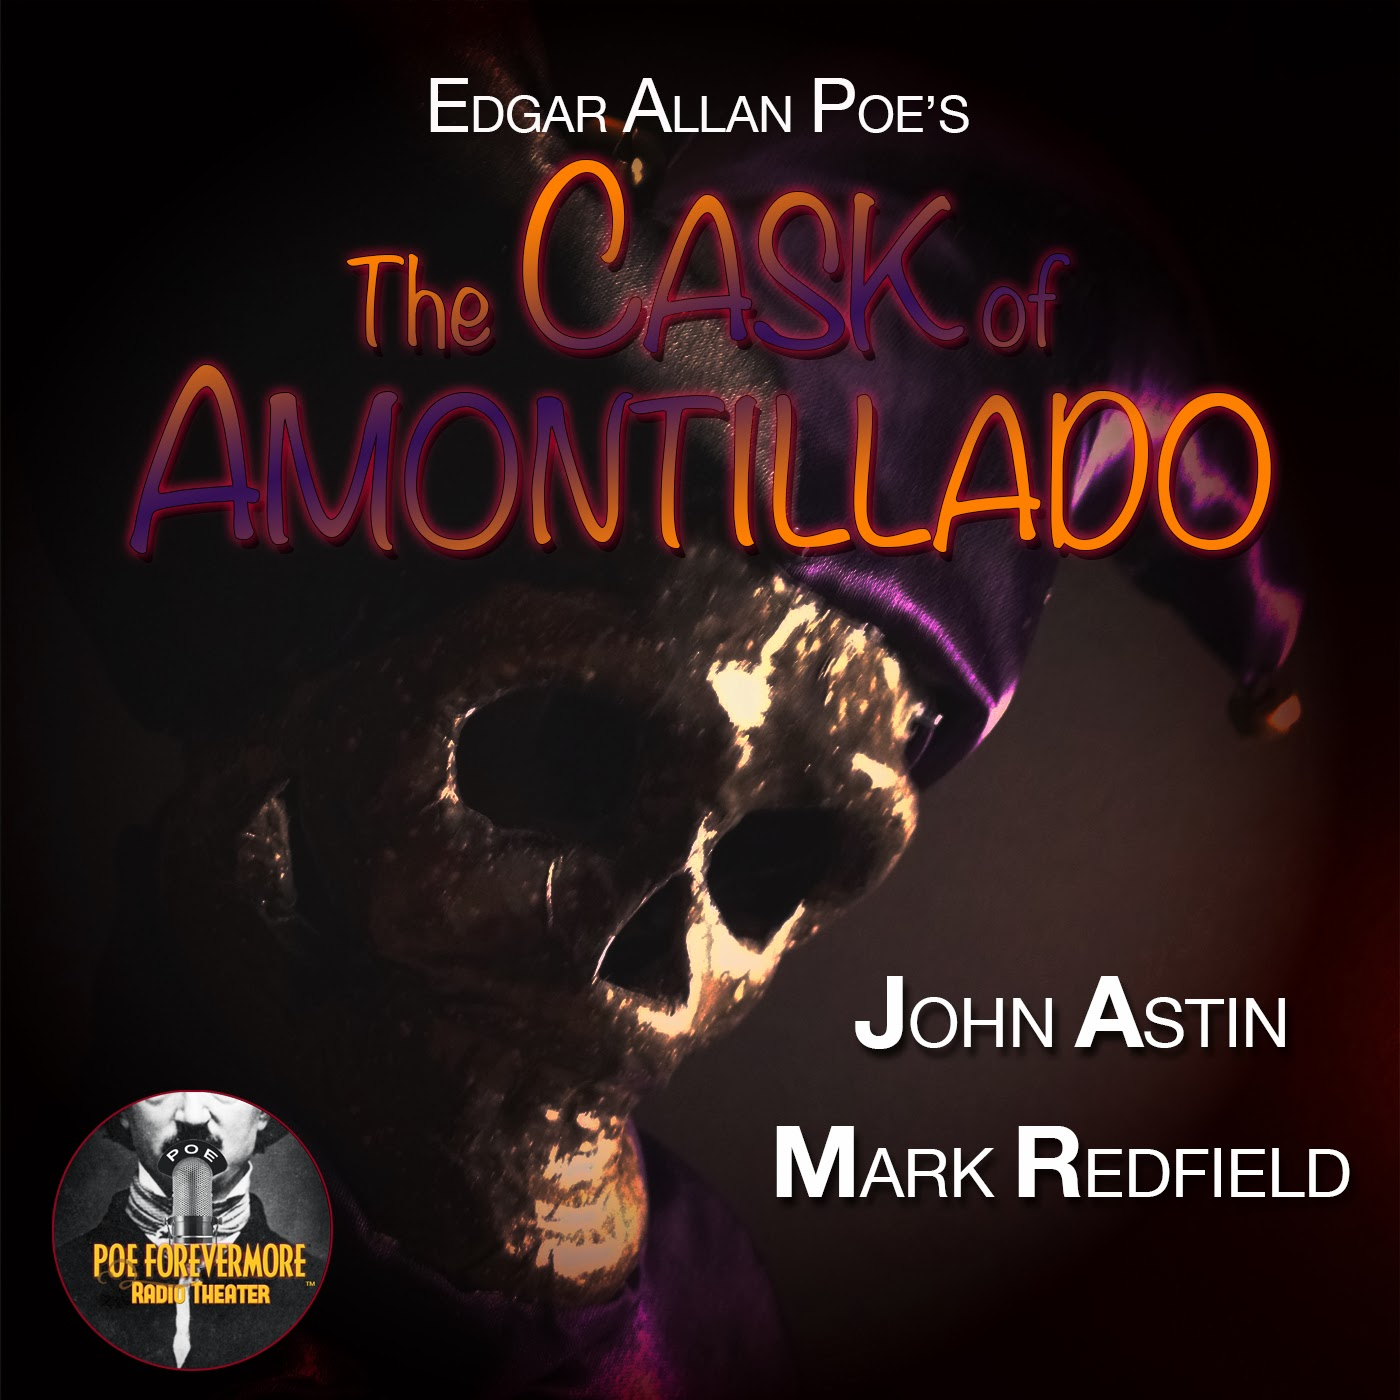 MAY'S AUDIO PLAY: THE CASK OF AMONTILLADO